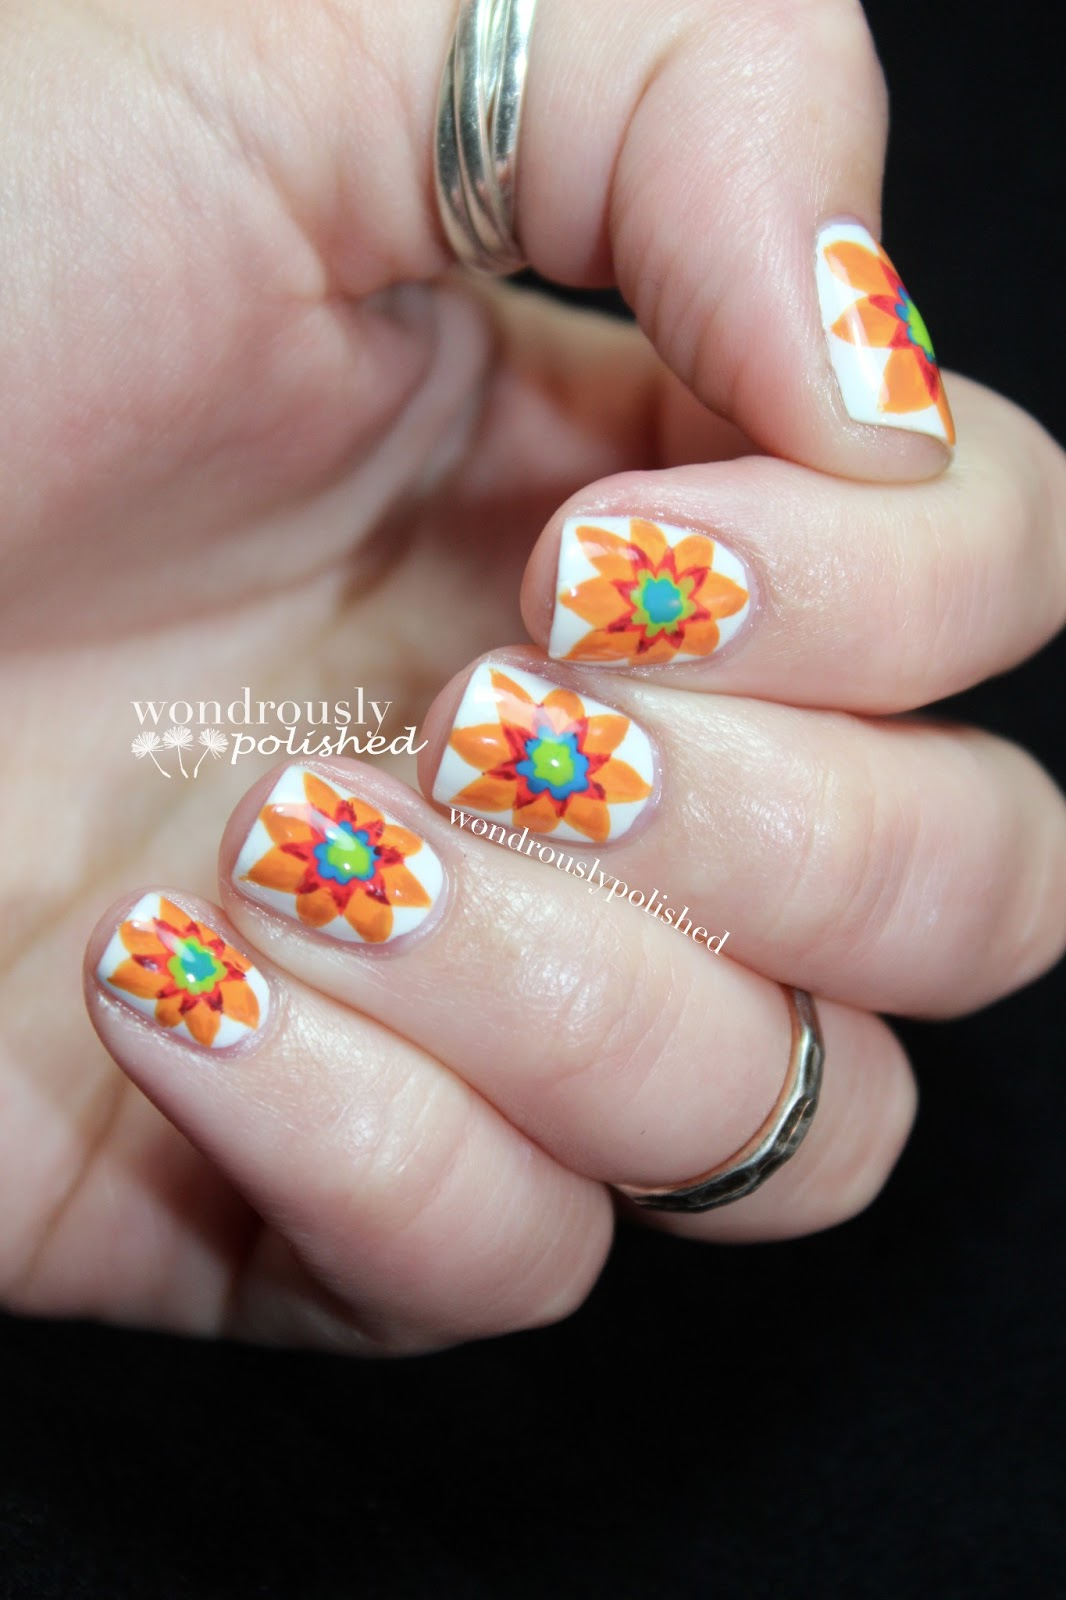 Wondrously Polished February Nail Art Challenge: Wondrously Polished: Majolica Inspired Flowers